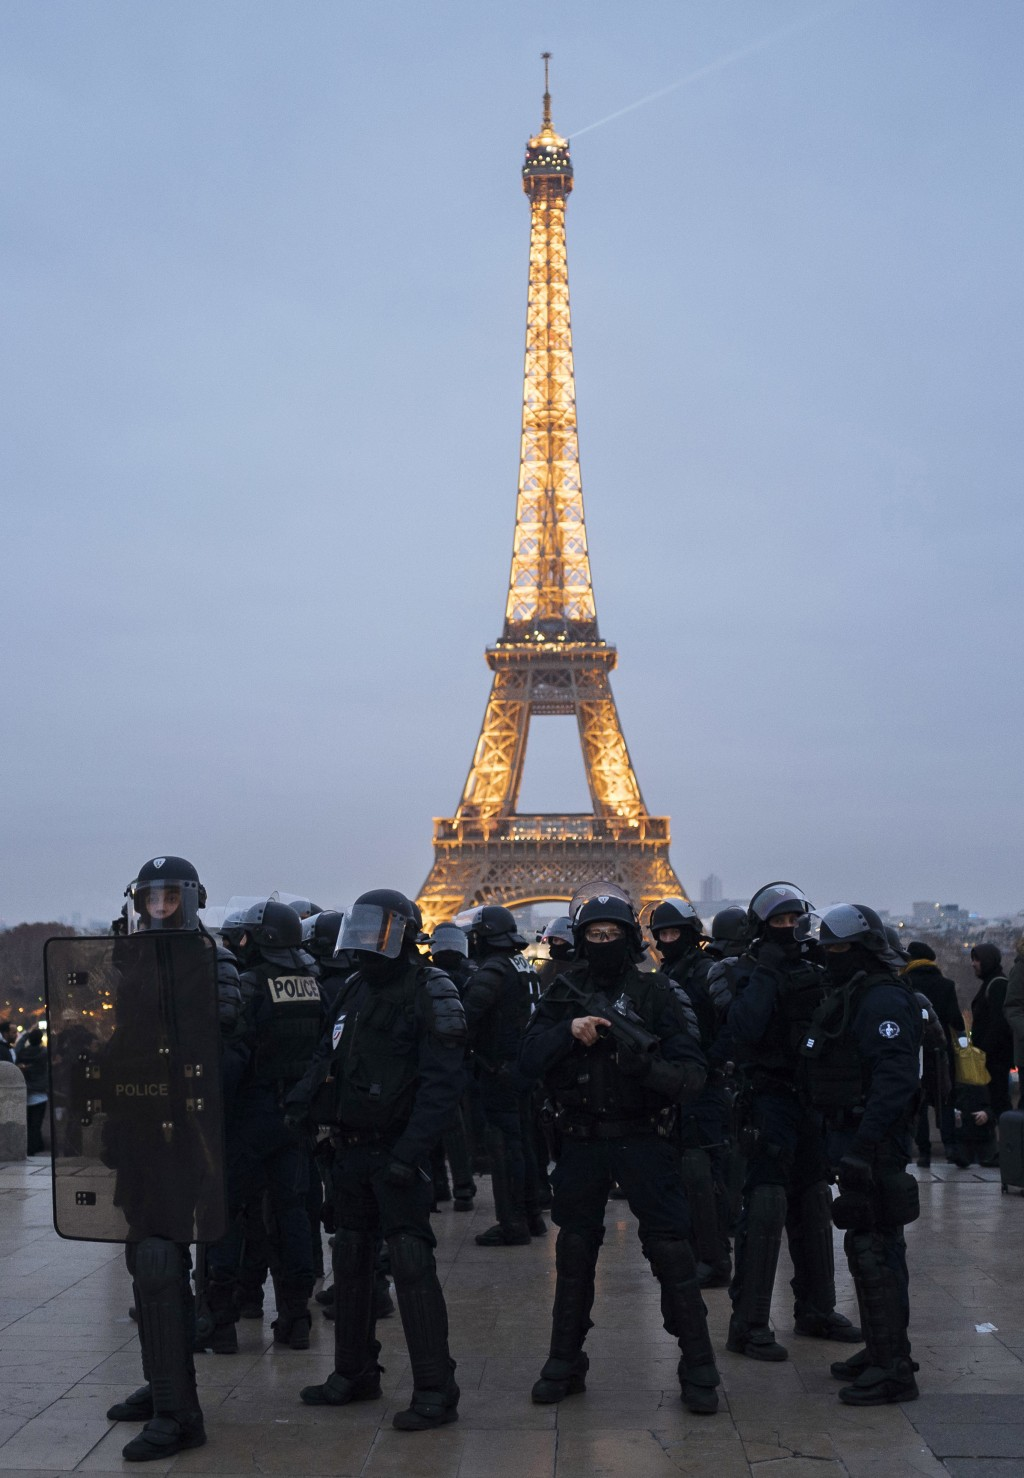 French riot police officers take position on the Trocadero plaza during a demonstration in Paris, Saturday, Dec. 29, 2018. Yellow vest protesters marc